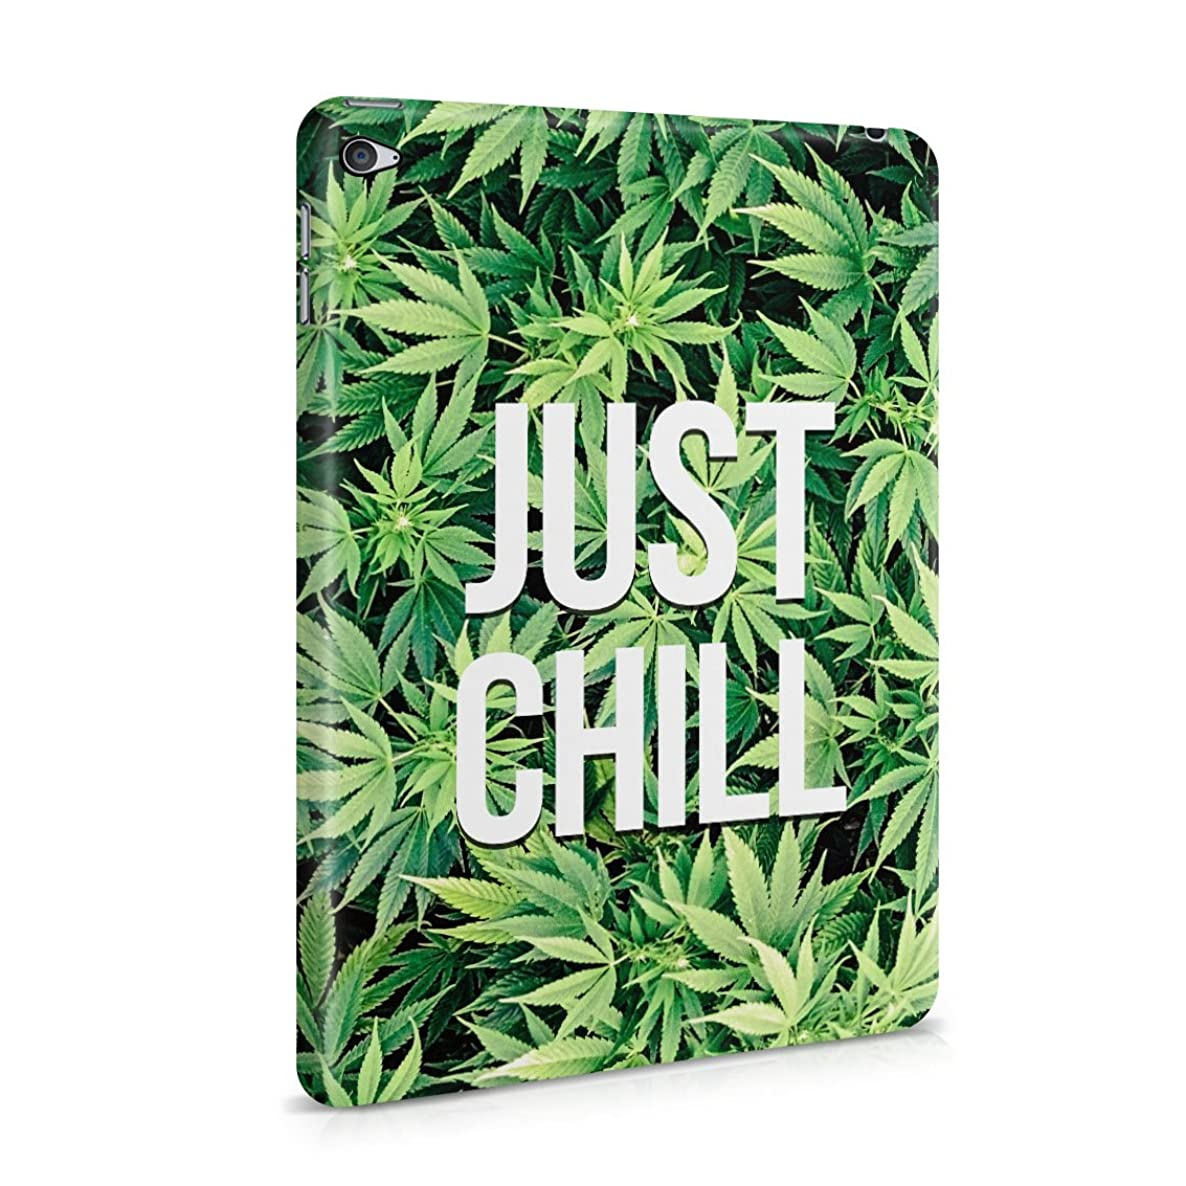 Just Chill Stoner 420 Weed Pattern Mary Jane Plastic Tablet Snap On Back Case Cover Shell For iPad Mini 4